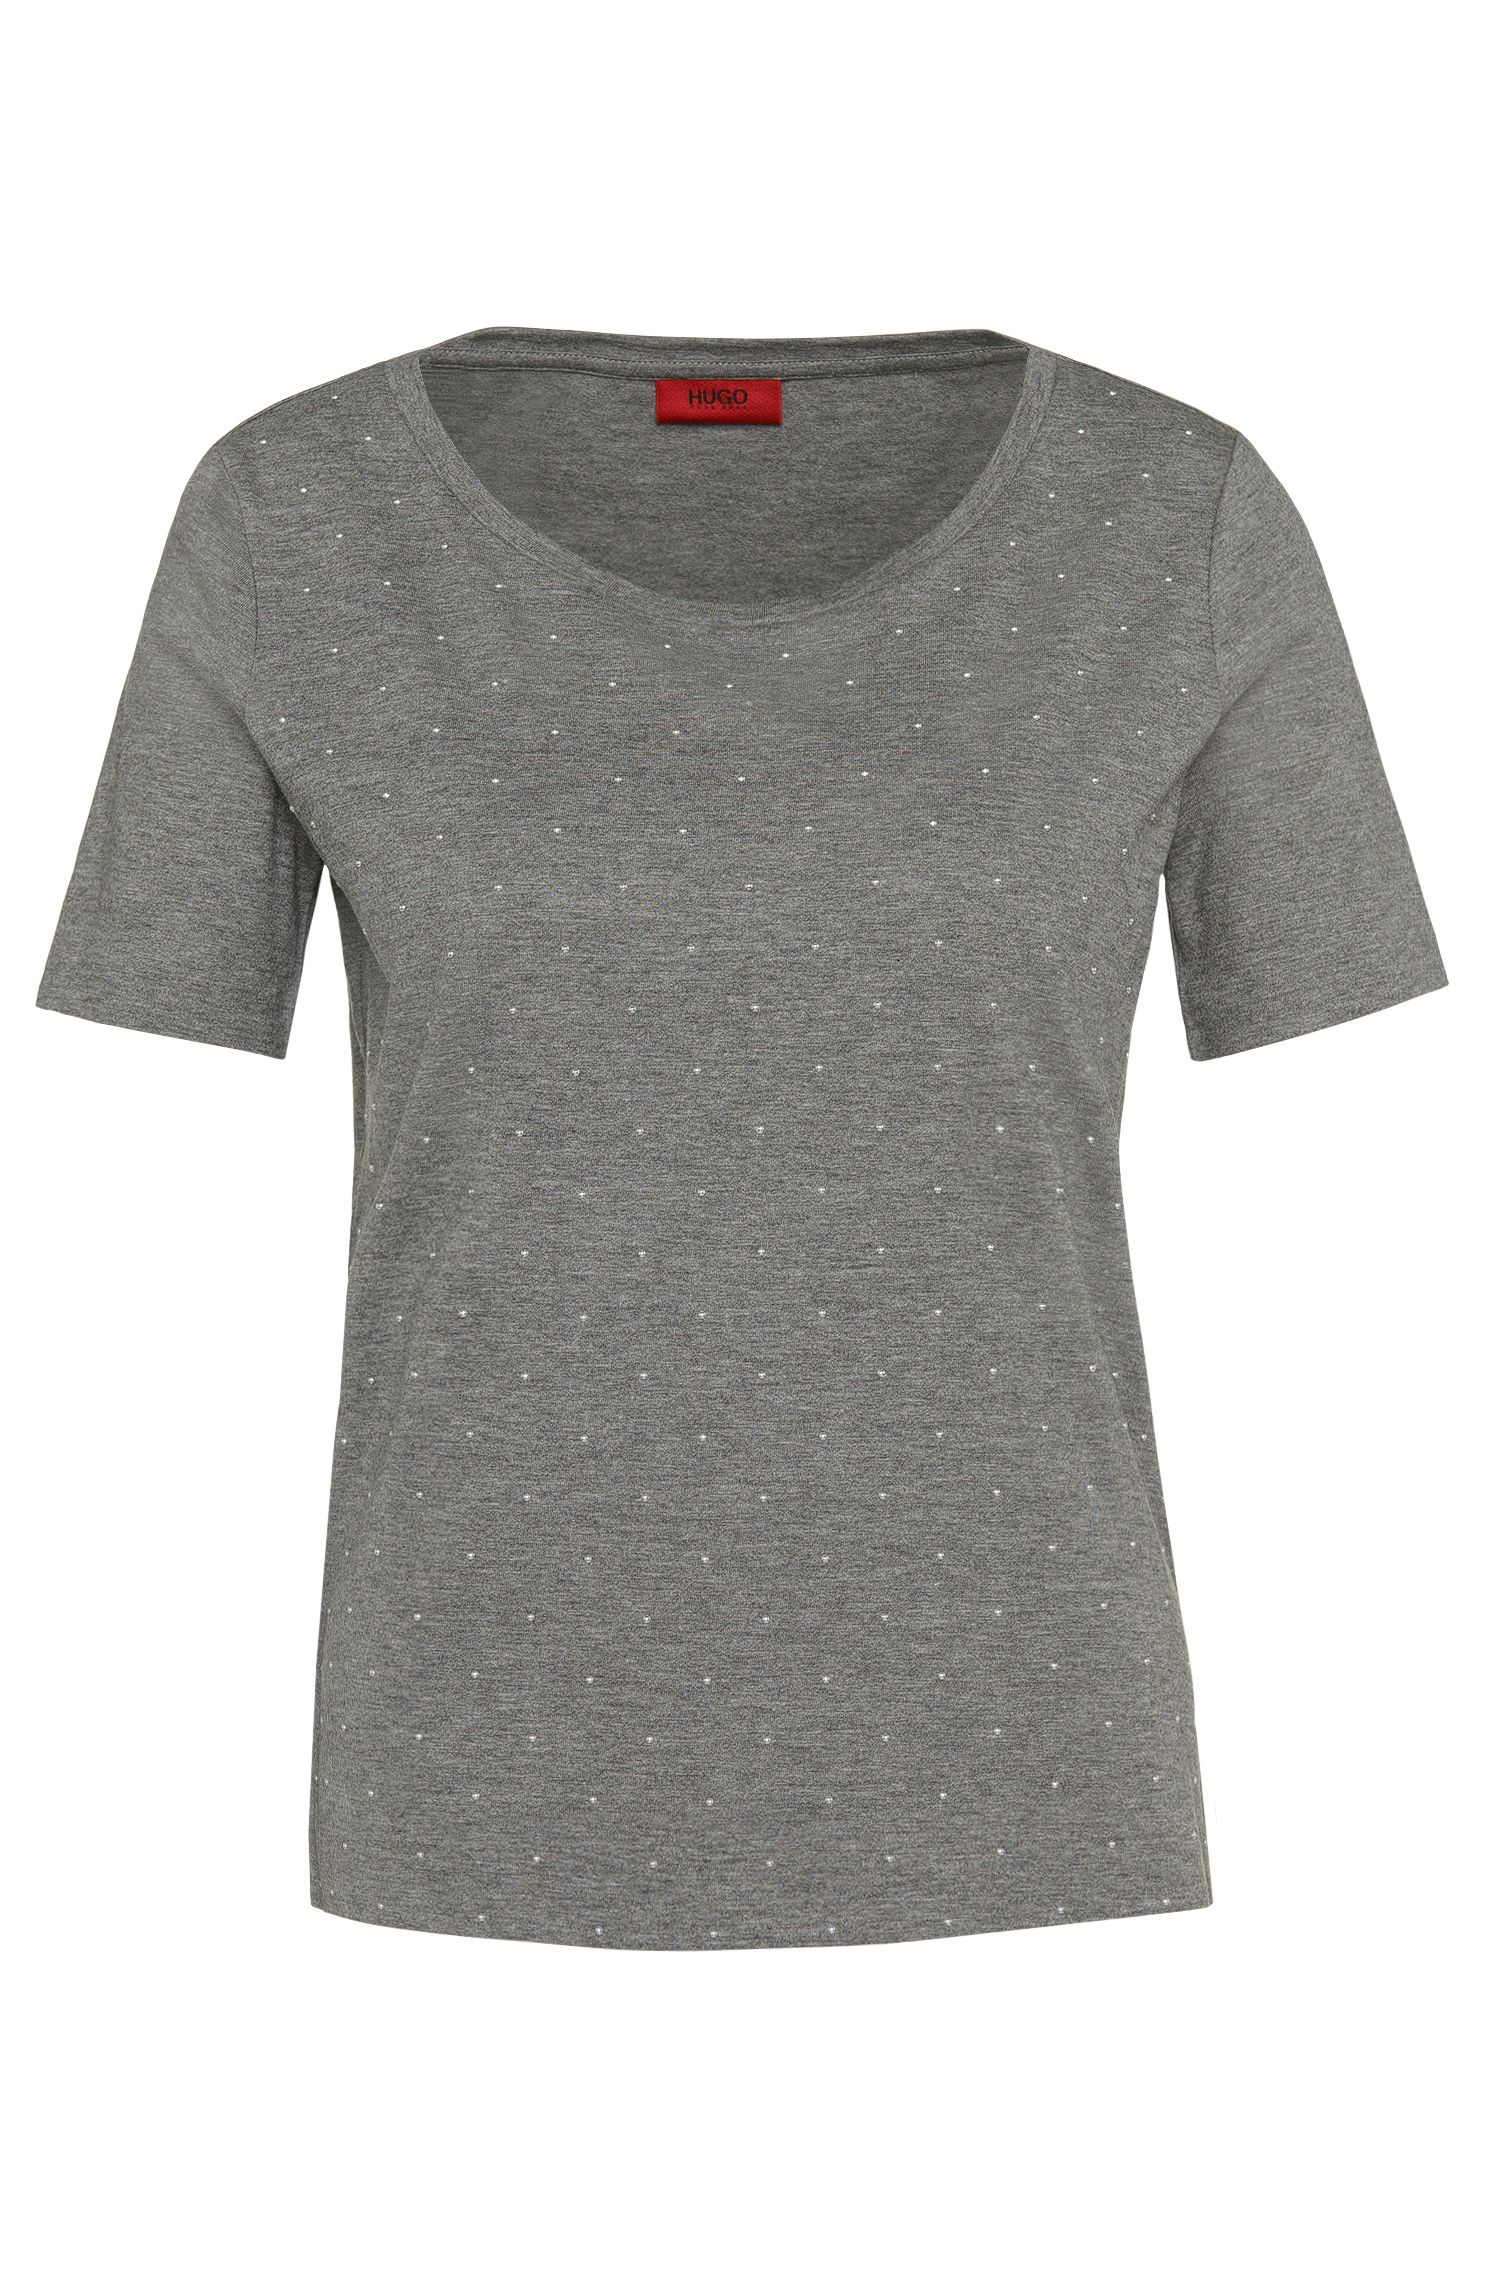 Cotton-blend t-shirt with silver-coloured studs: 'Nastina'